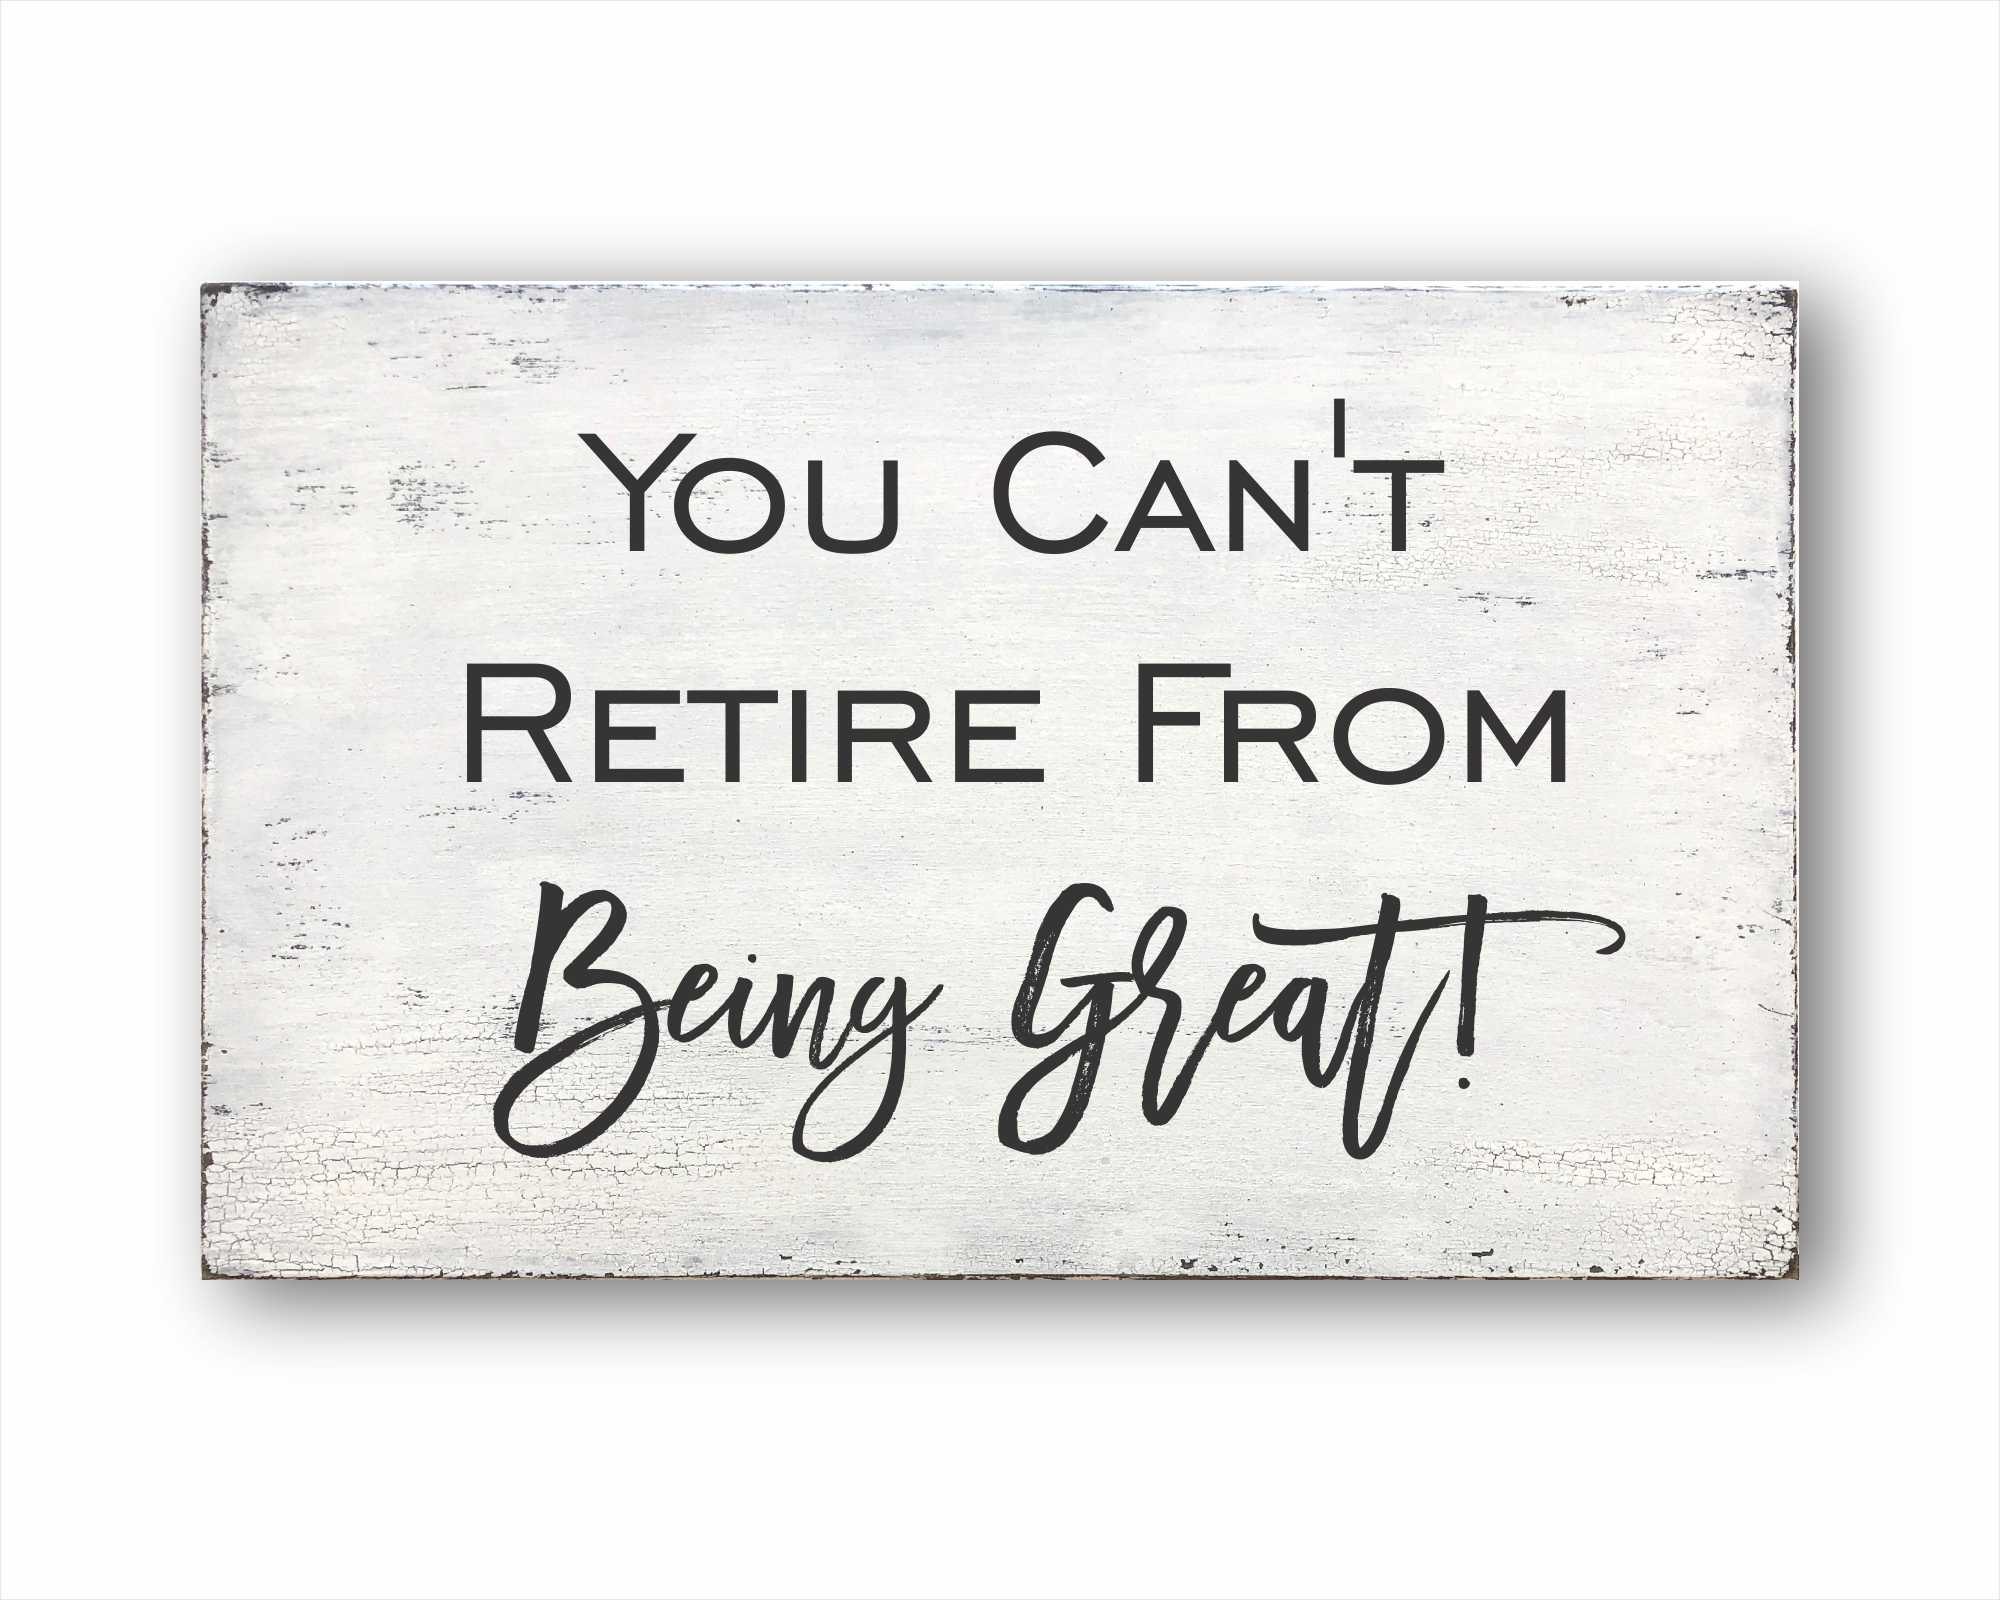 You Can't Retire From Being Great: Rustic Rectangular Wood Sign